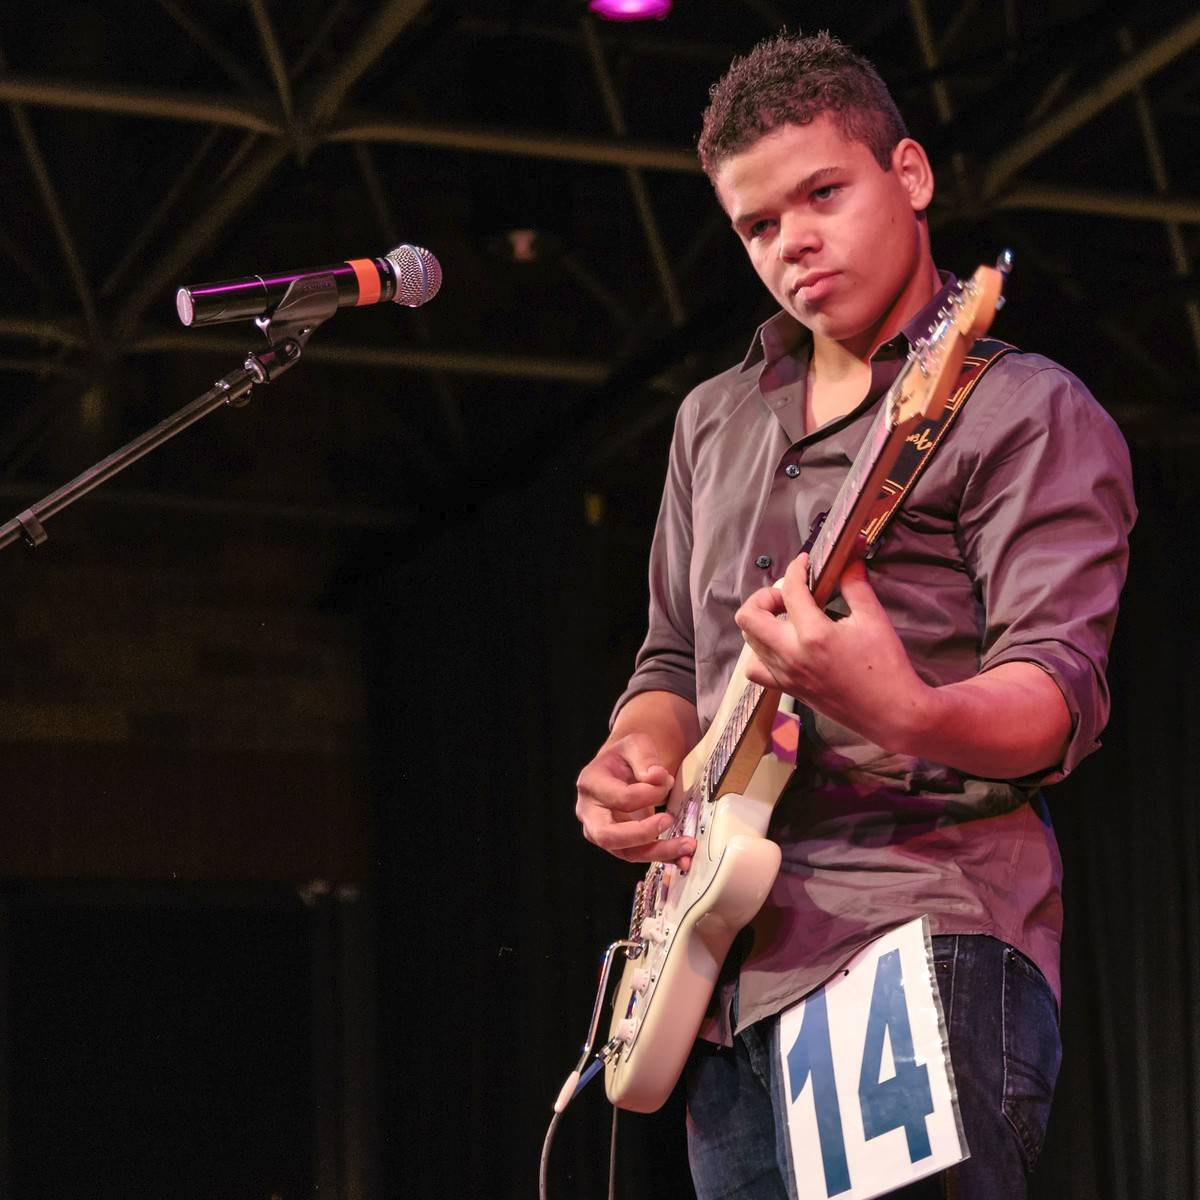 The 2013 talent winner, Jake Julian of Aurora, a Waubonsie Valley High School student, is the guest performer at this year's show.